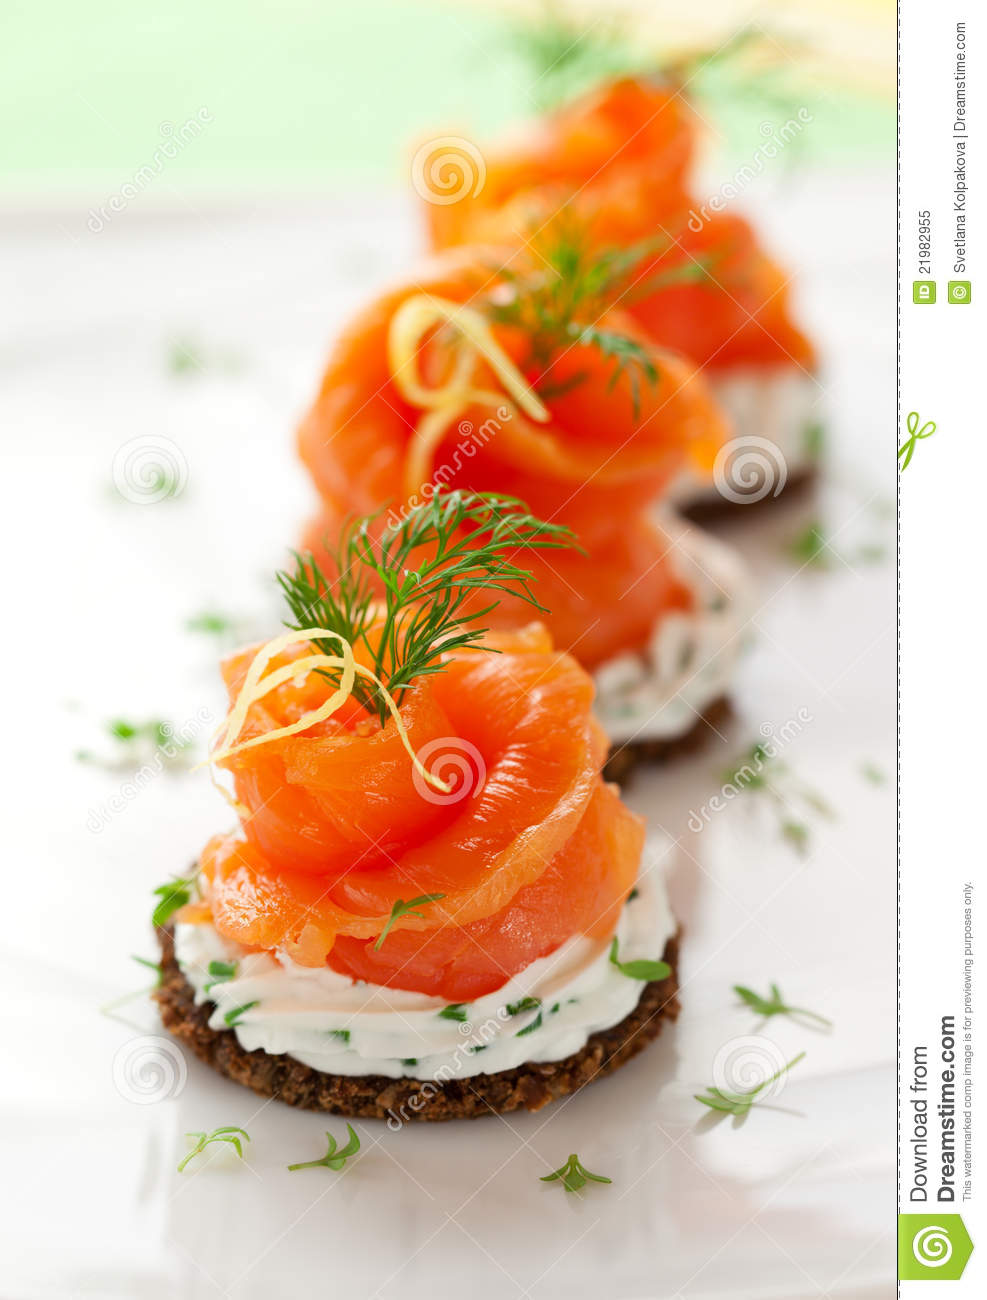 Canapes With Smoked Salmon Royalty Free Stock Photo - Image: 21982955